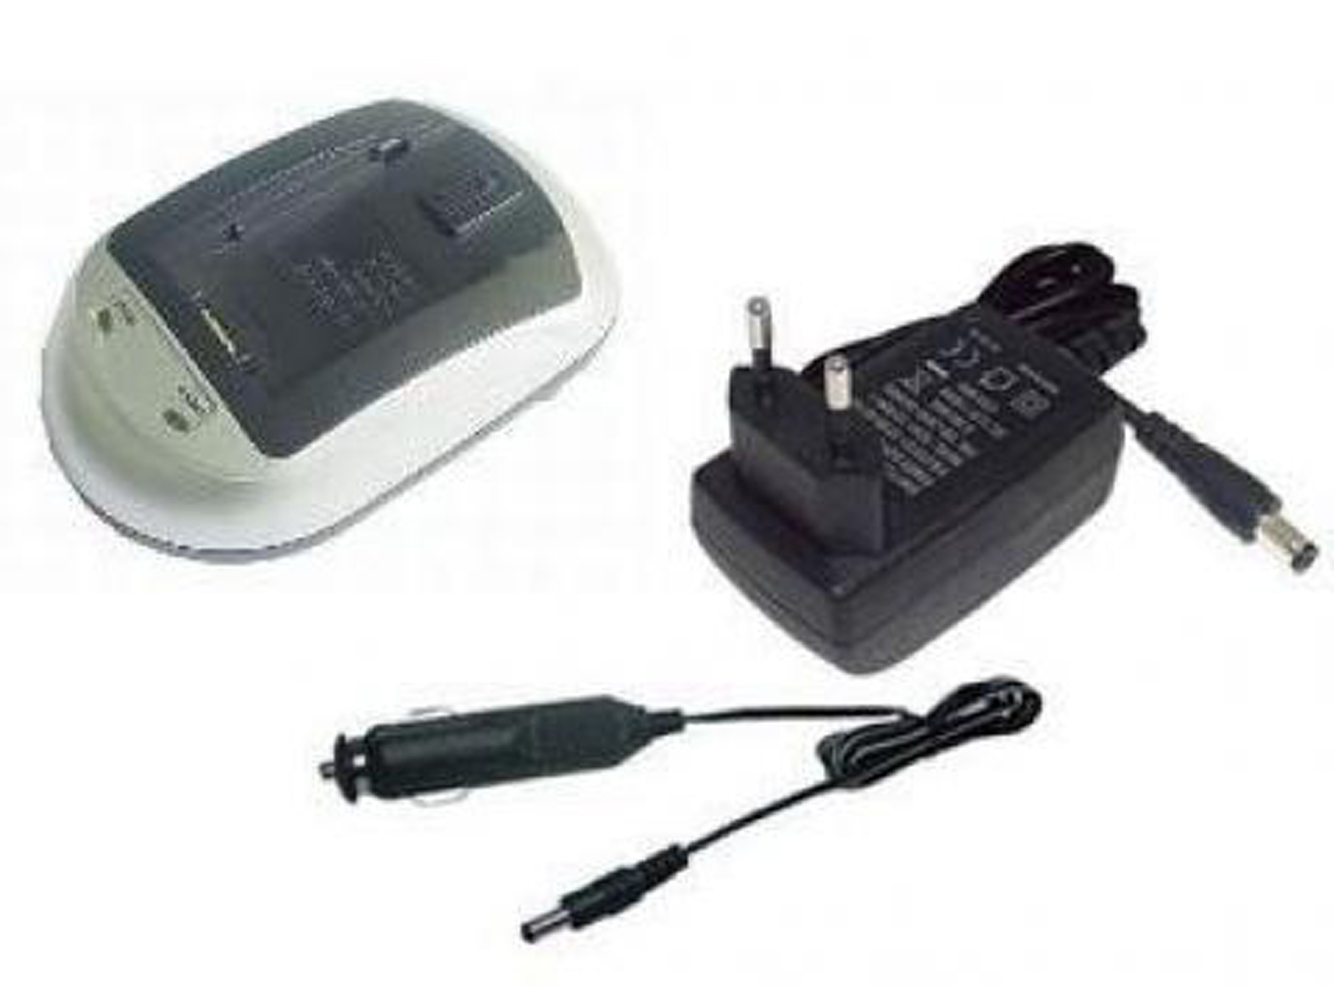 Battery Charger for PANASONIC CGA-D54D, CGA-D54S, CGA-D54SE, CGA-D54SE/1H, CGP-D28A/1B, CGP-D28S, CGP-D28SE/1B, CGP-D320T1B, CGP-D54S, CGR-D08, CGR-D08A/1B, CGR-D08R, CGR-D08S, CGR-D08SE/1B, CGR-D120, CGR-D120E/1B, CGR-D120T, CGR-D14, CGR-D16A/1B, CGR-D16